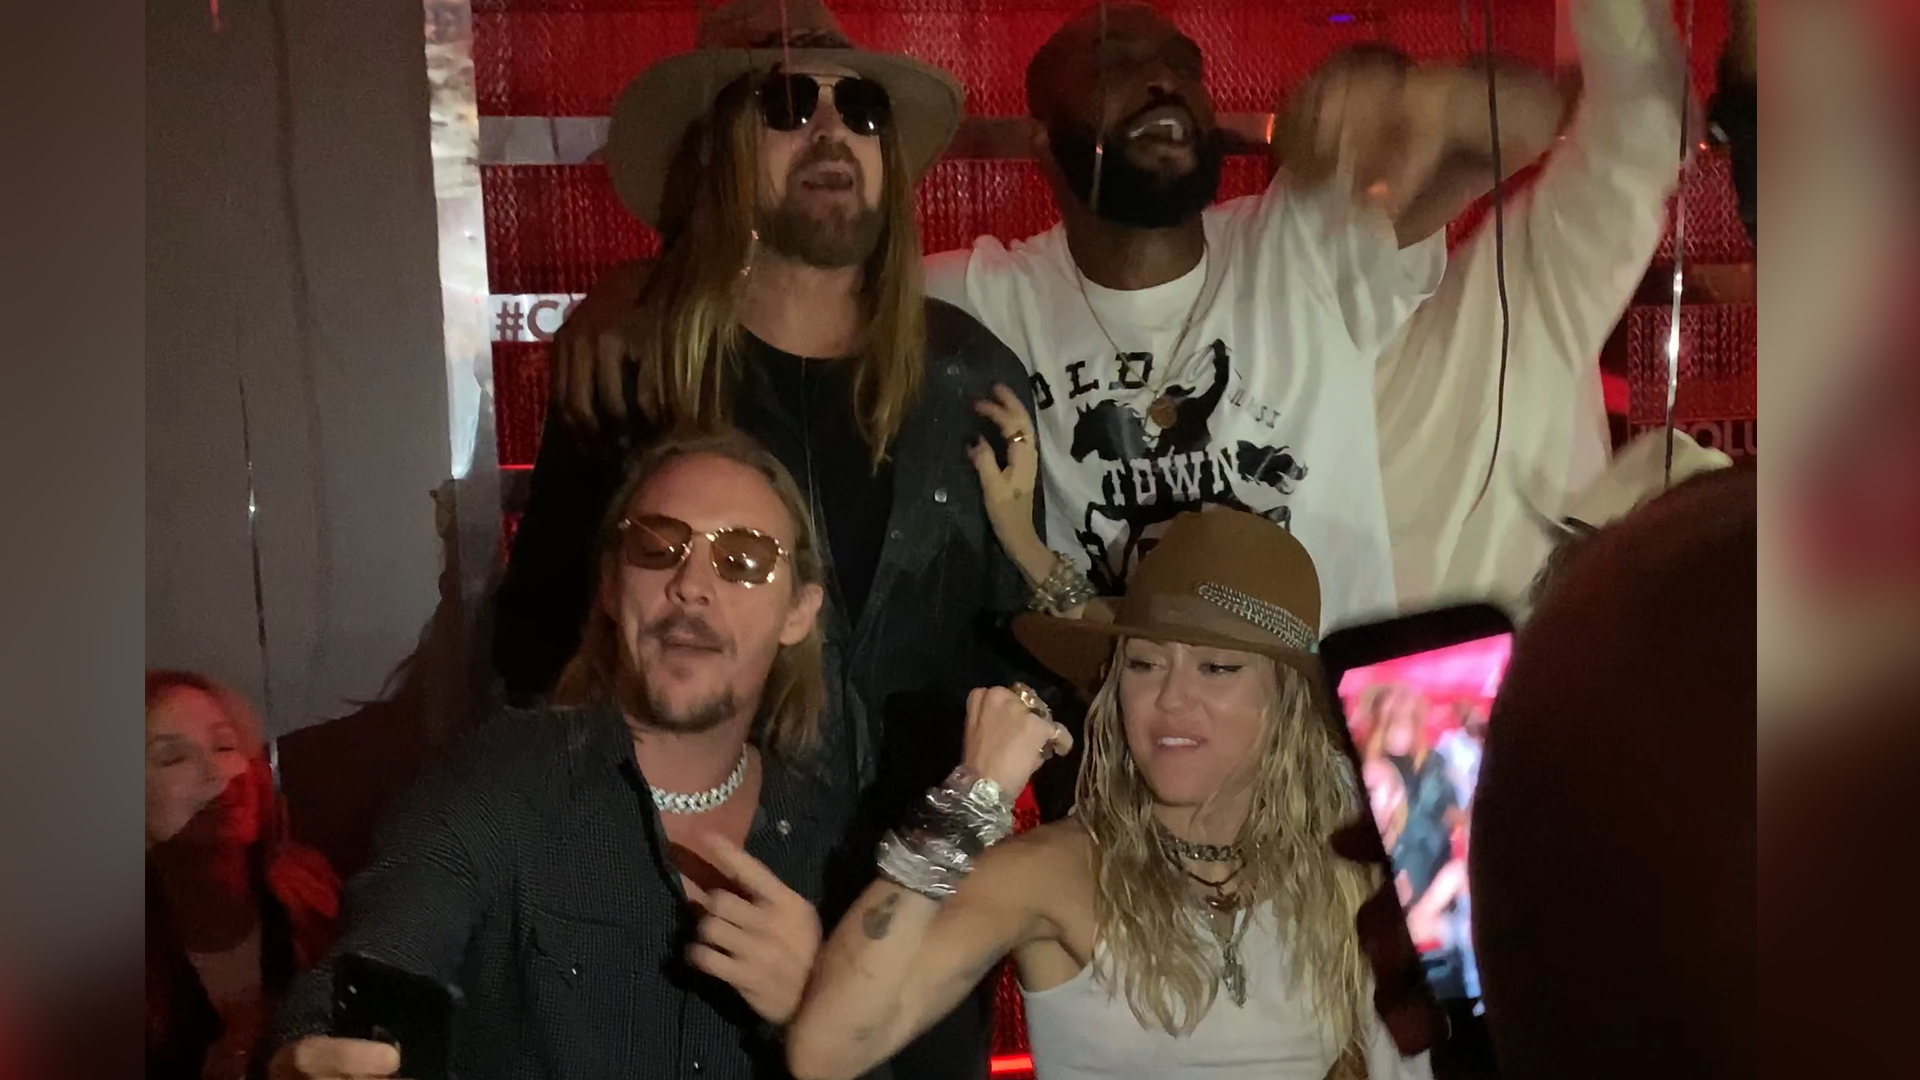 Miley Cyrus, Billy Ray Cyrus, VMAs, Tish Cyrus, Kaitlynn Carter, Lil Nas X, Diplo, afterparty, lifeminute, lifeminute.tv